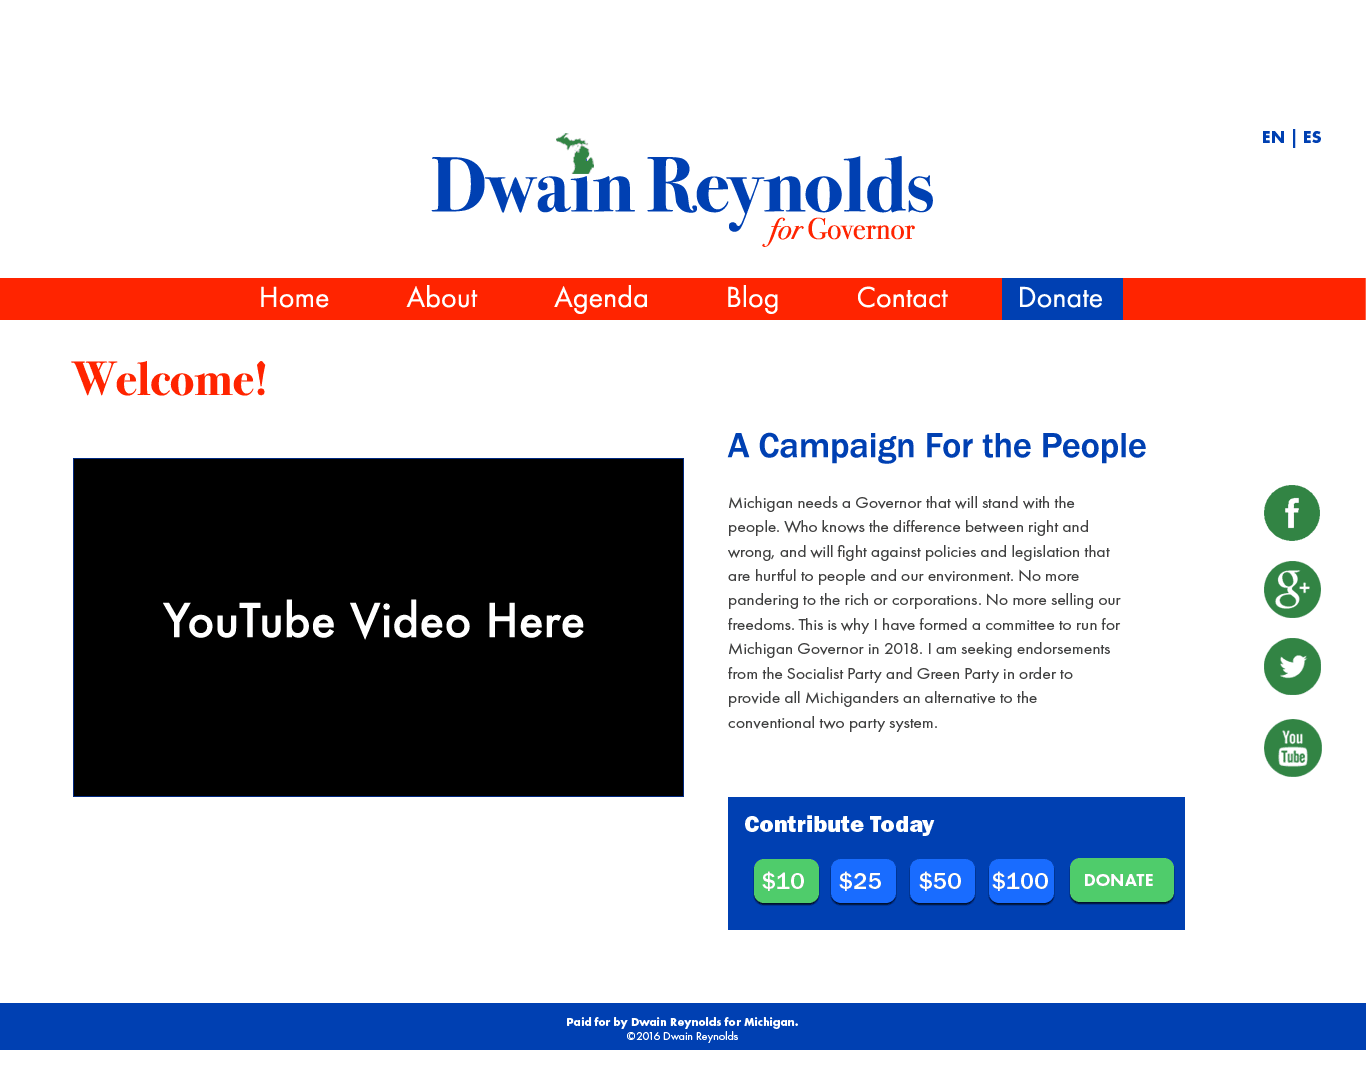 Dwain Reynolds Homepage Website Design